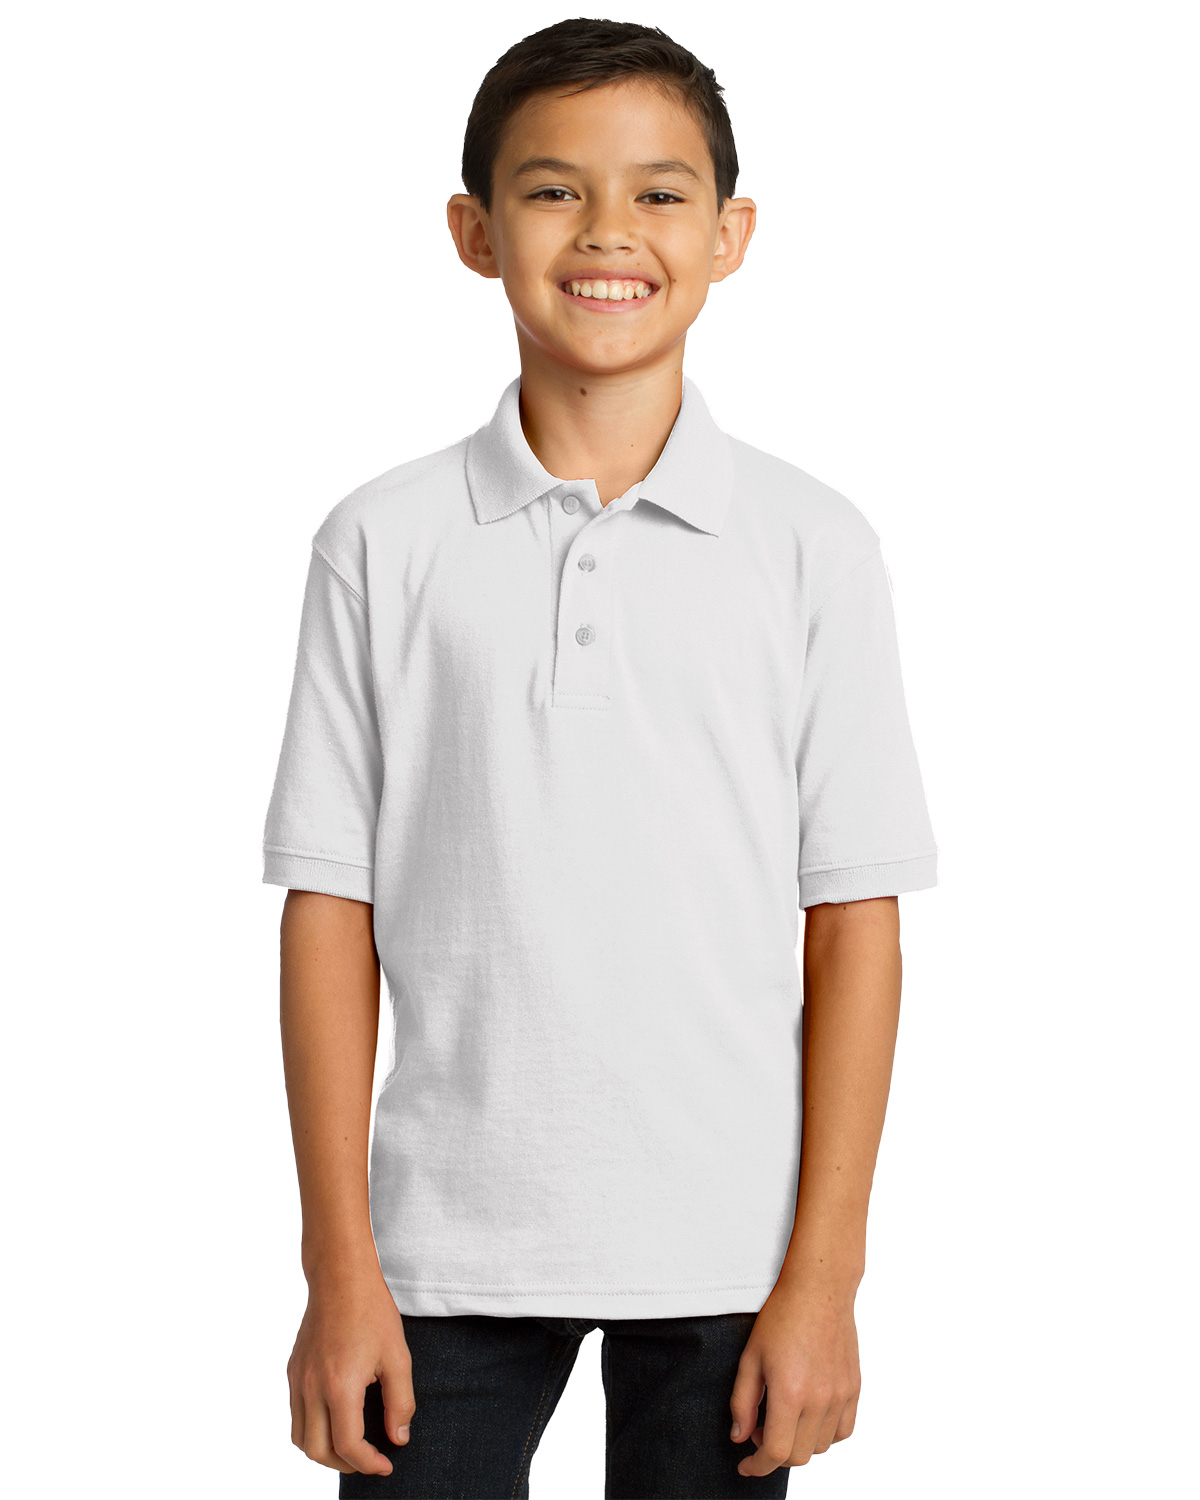 Boys Polo Shirts Wholesale Polo T Shirts For Boys